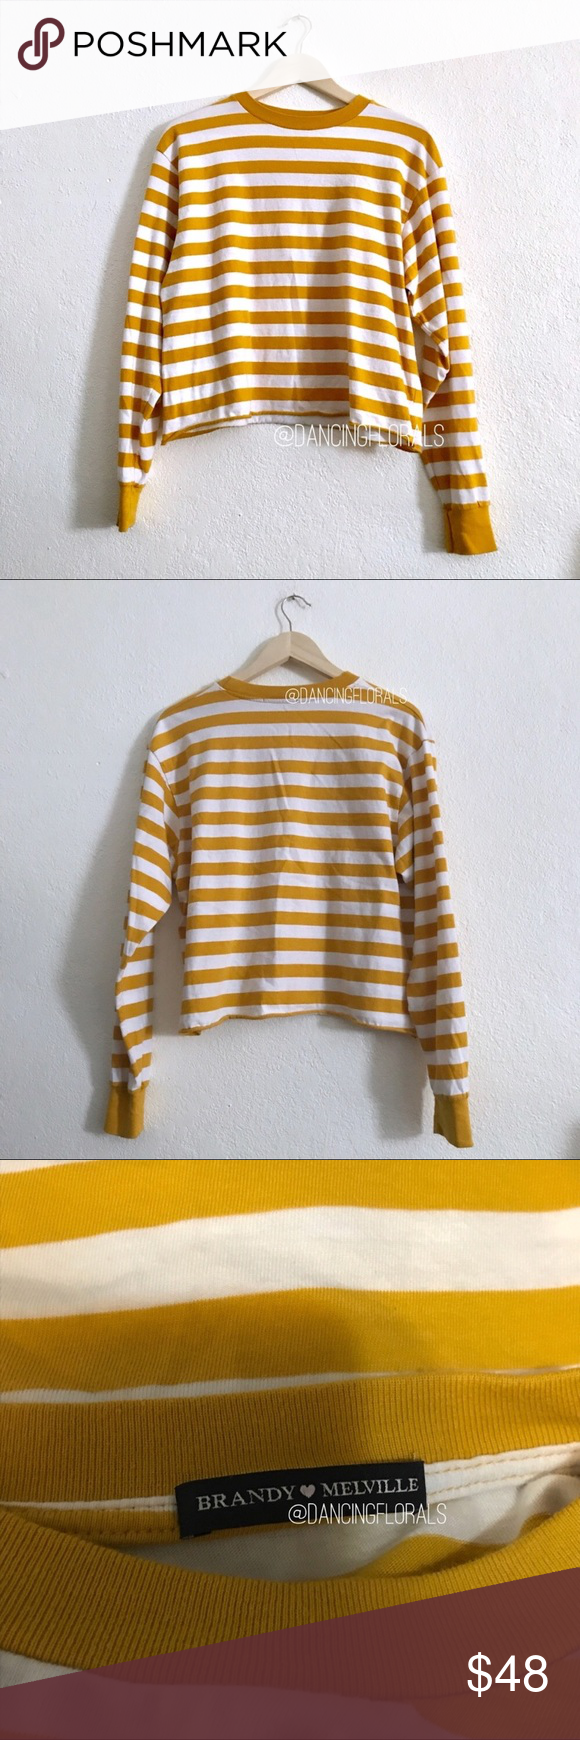 dfcce4c22e Brandy Melville Deep yellow mustard Acacia sweater Brandy Melville Deep  yellow mustard and white striped Acacia long sleeve top Soft cotton long  sleeve top ...